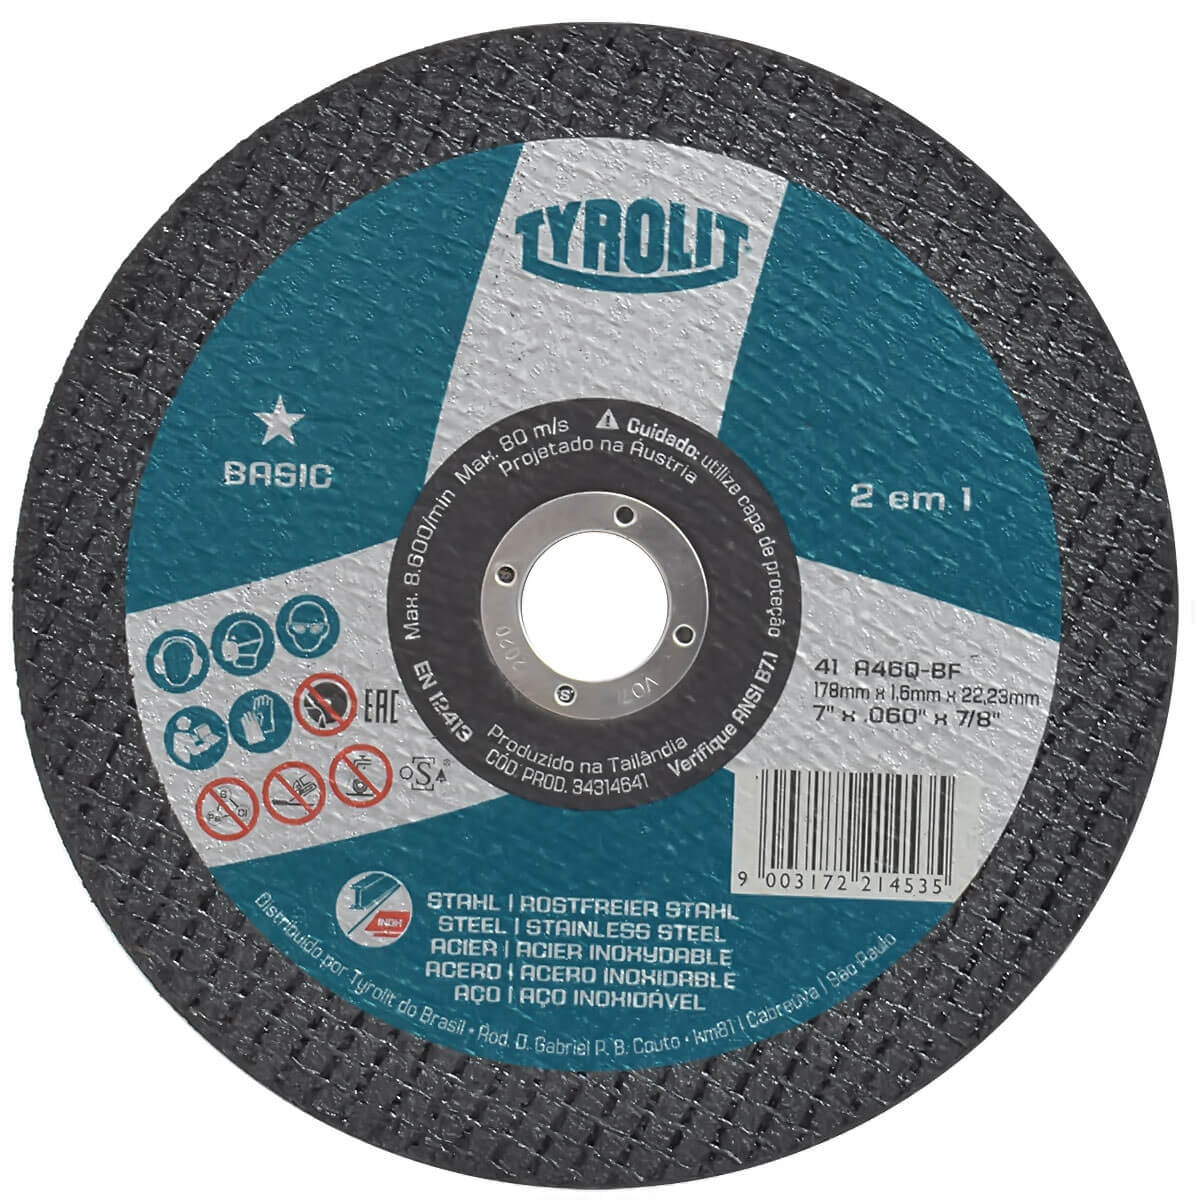 Disco de Corte Basic 178x1,6mm 41 A46Q-BF Tyrolit